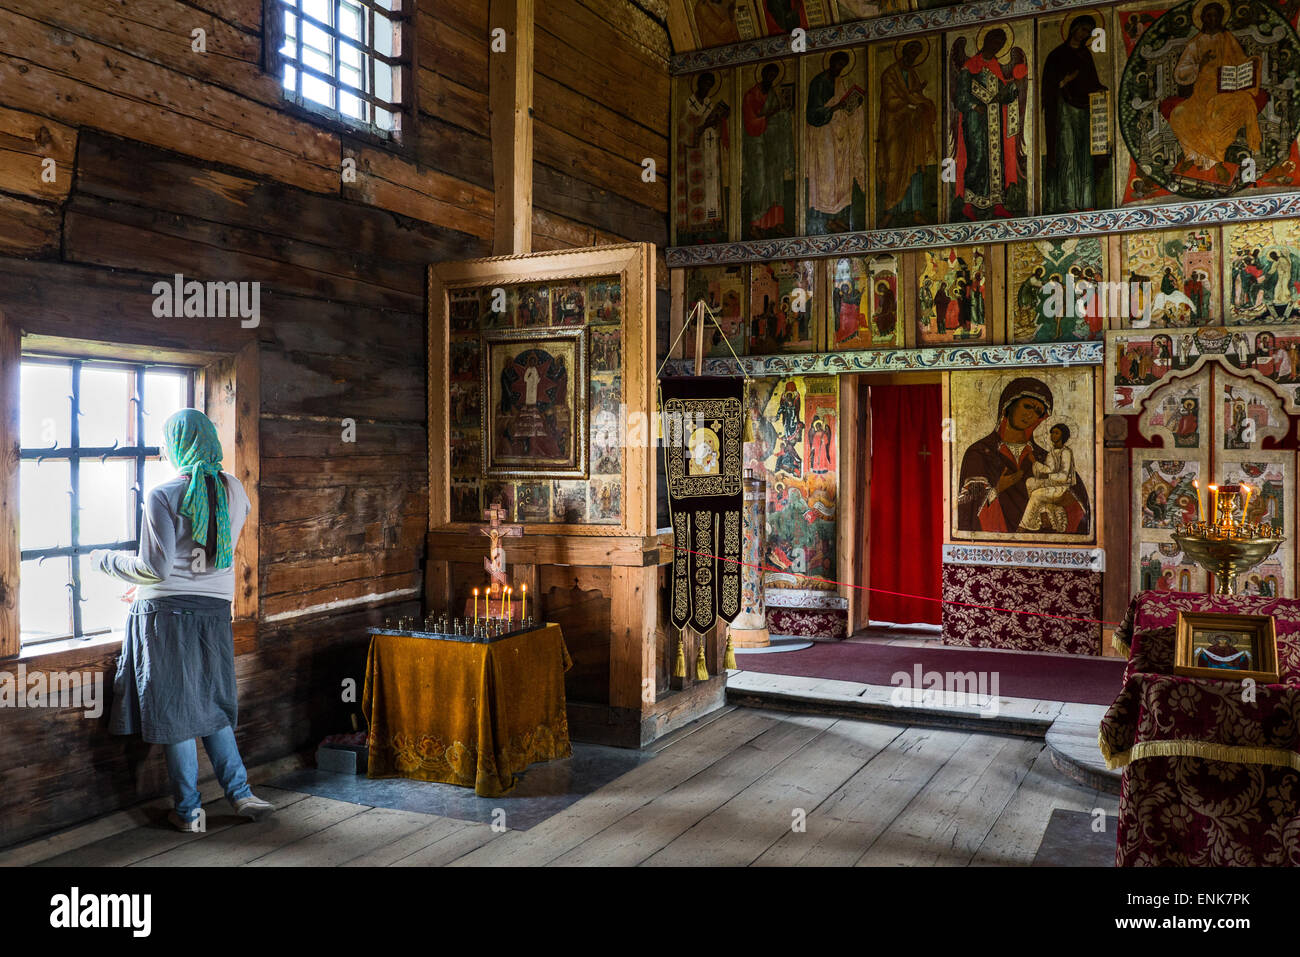 Russia, Kishi island on the lake Onega, open air Museum of Karelian Wooden Architecture, a lady near the window - Stock Image